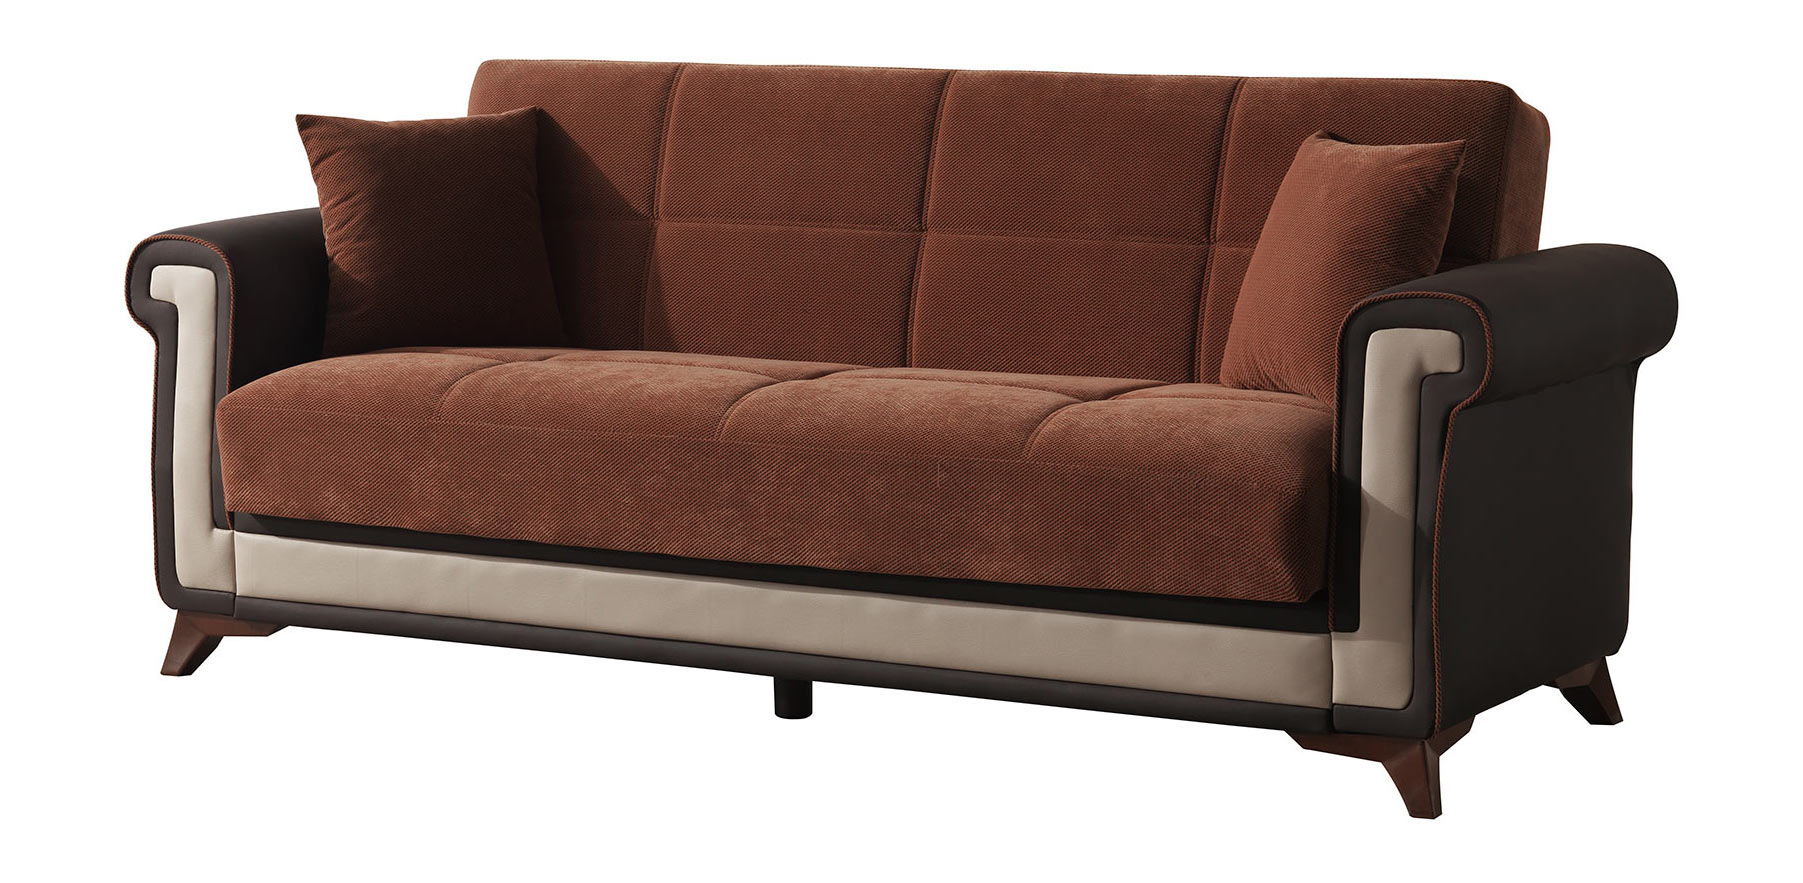 Proline Brown Convertible Sofa Bed By Casamode